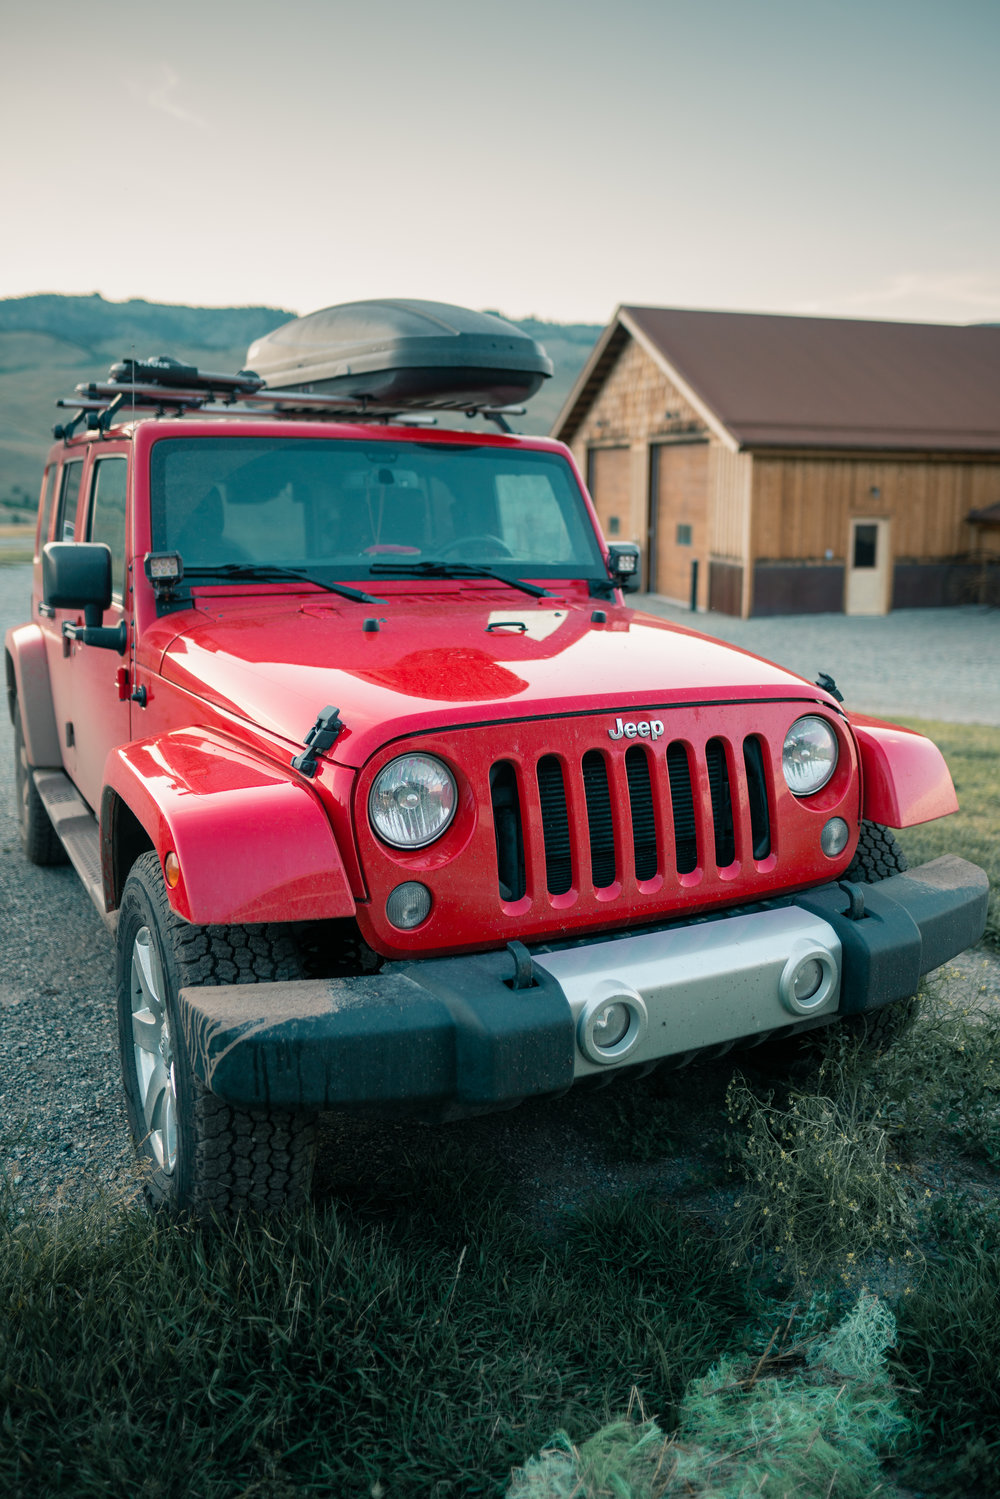 The jeep returns home to Tom Miner Basin, Montana.